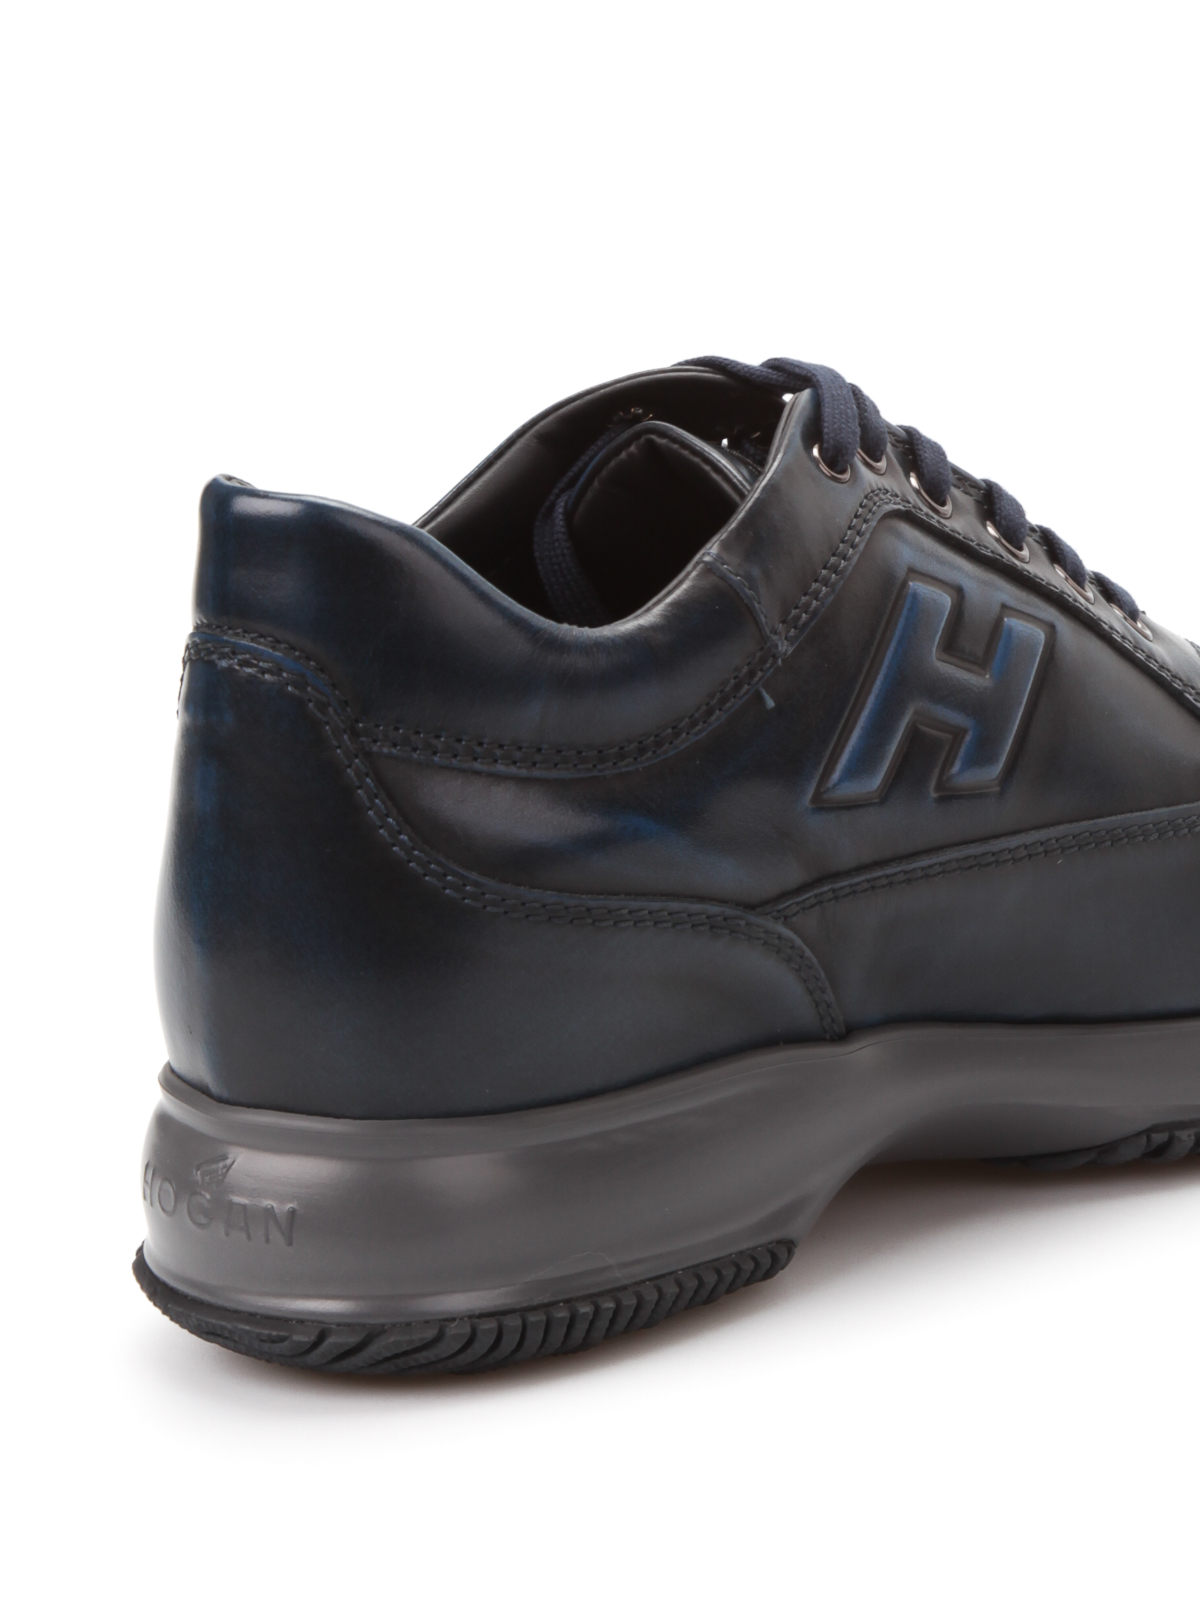 Hogan Shop Online Sneaker Interactive Hogan Sneakers Ikrix Shop Online